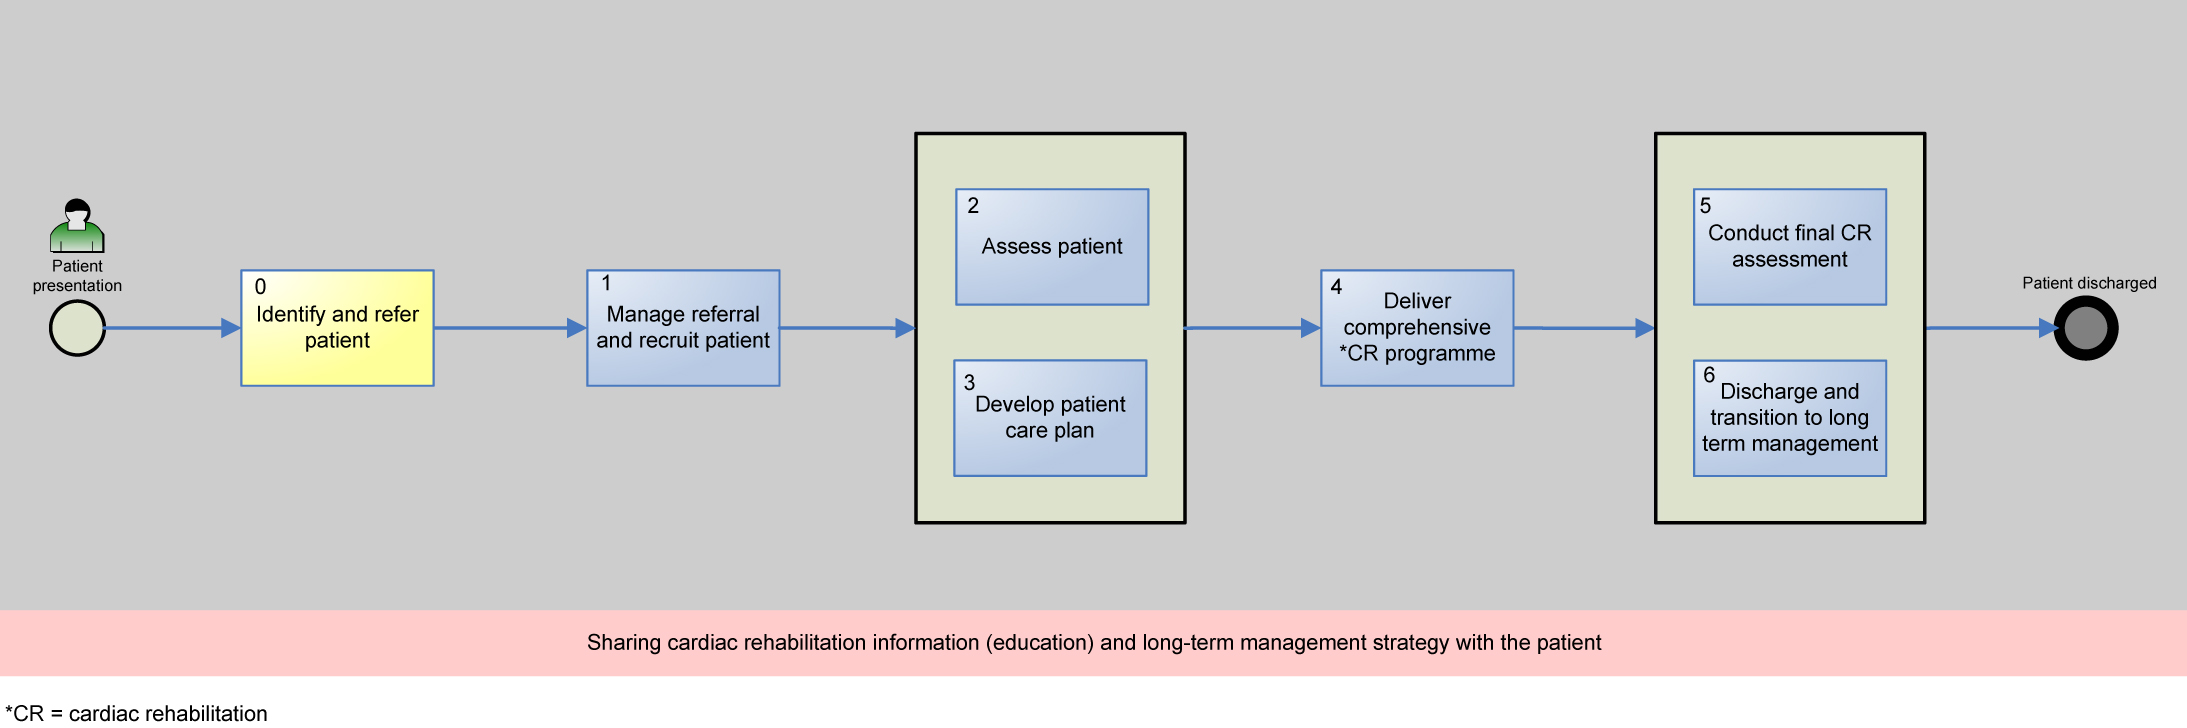 1. Introduction Figure 2: Department of Health Commissioning Pack 0-6 Stage Patient Pathway of Care [15] 1.